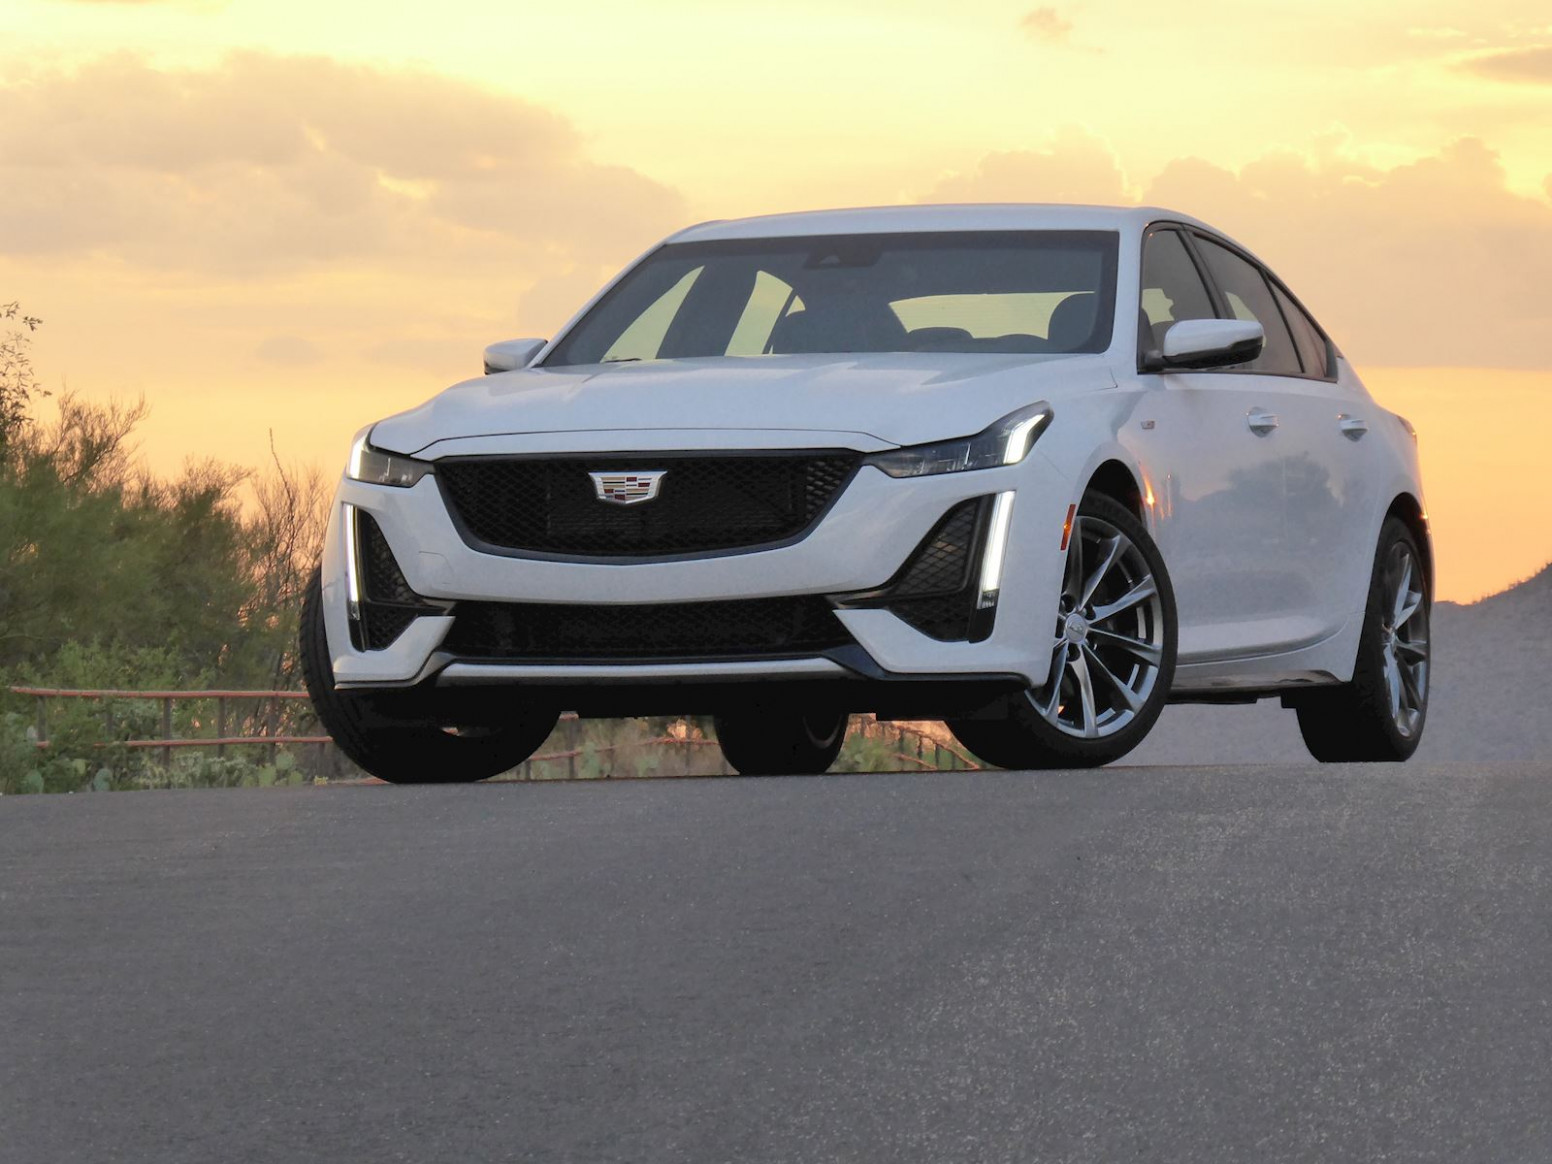 Redesign and Review 2022 Cadillac Ct5 Mpg